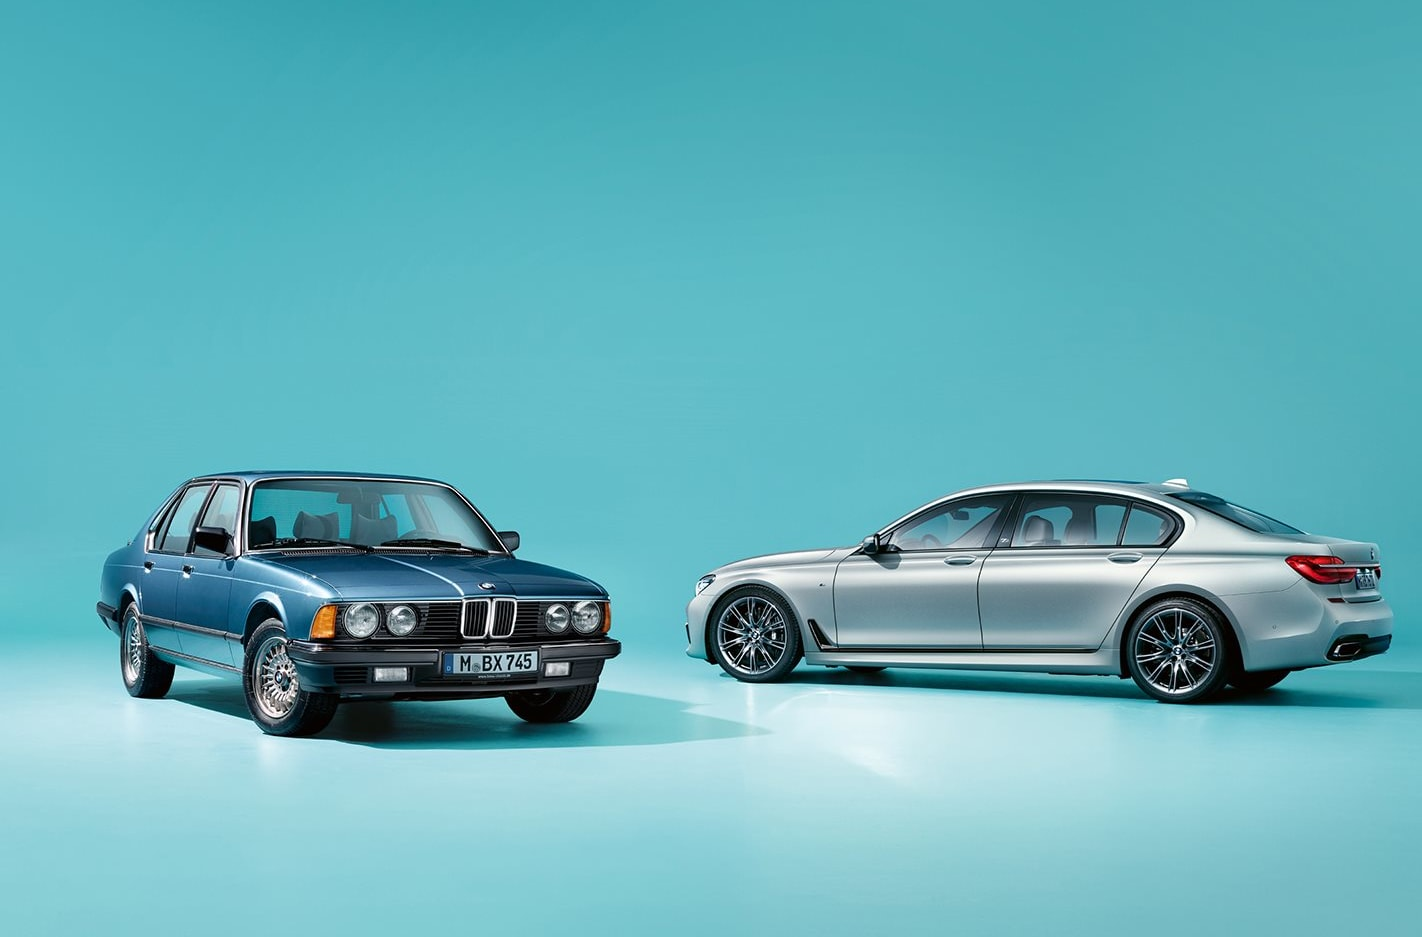 2018 BMW 7 Series 40 Jahre Edition is as exclusive as special editions come